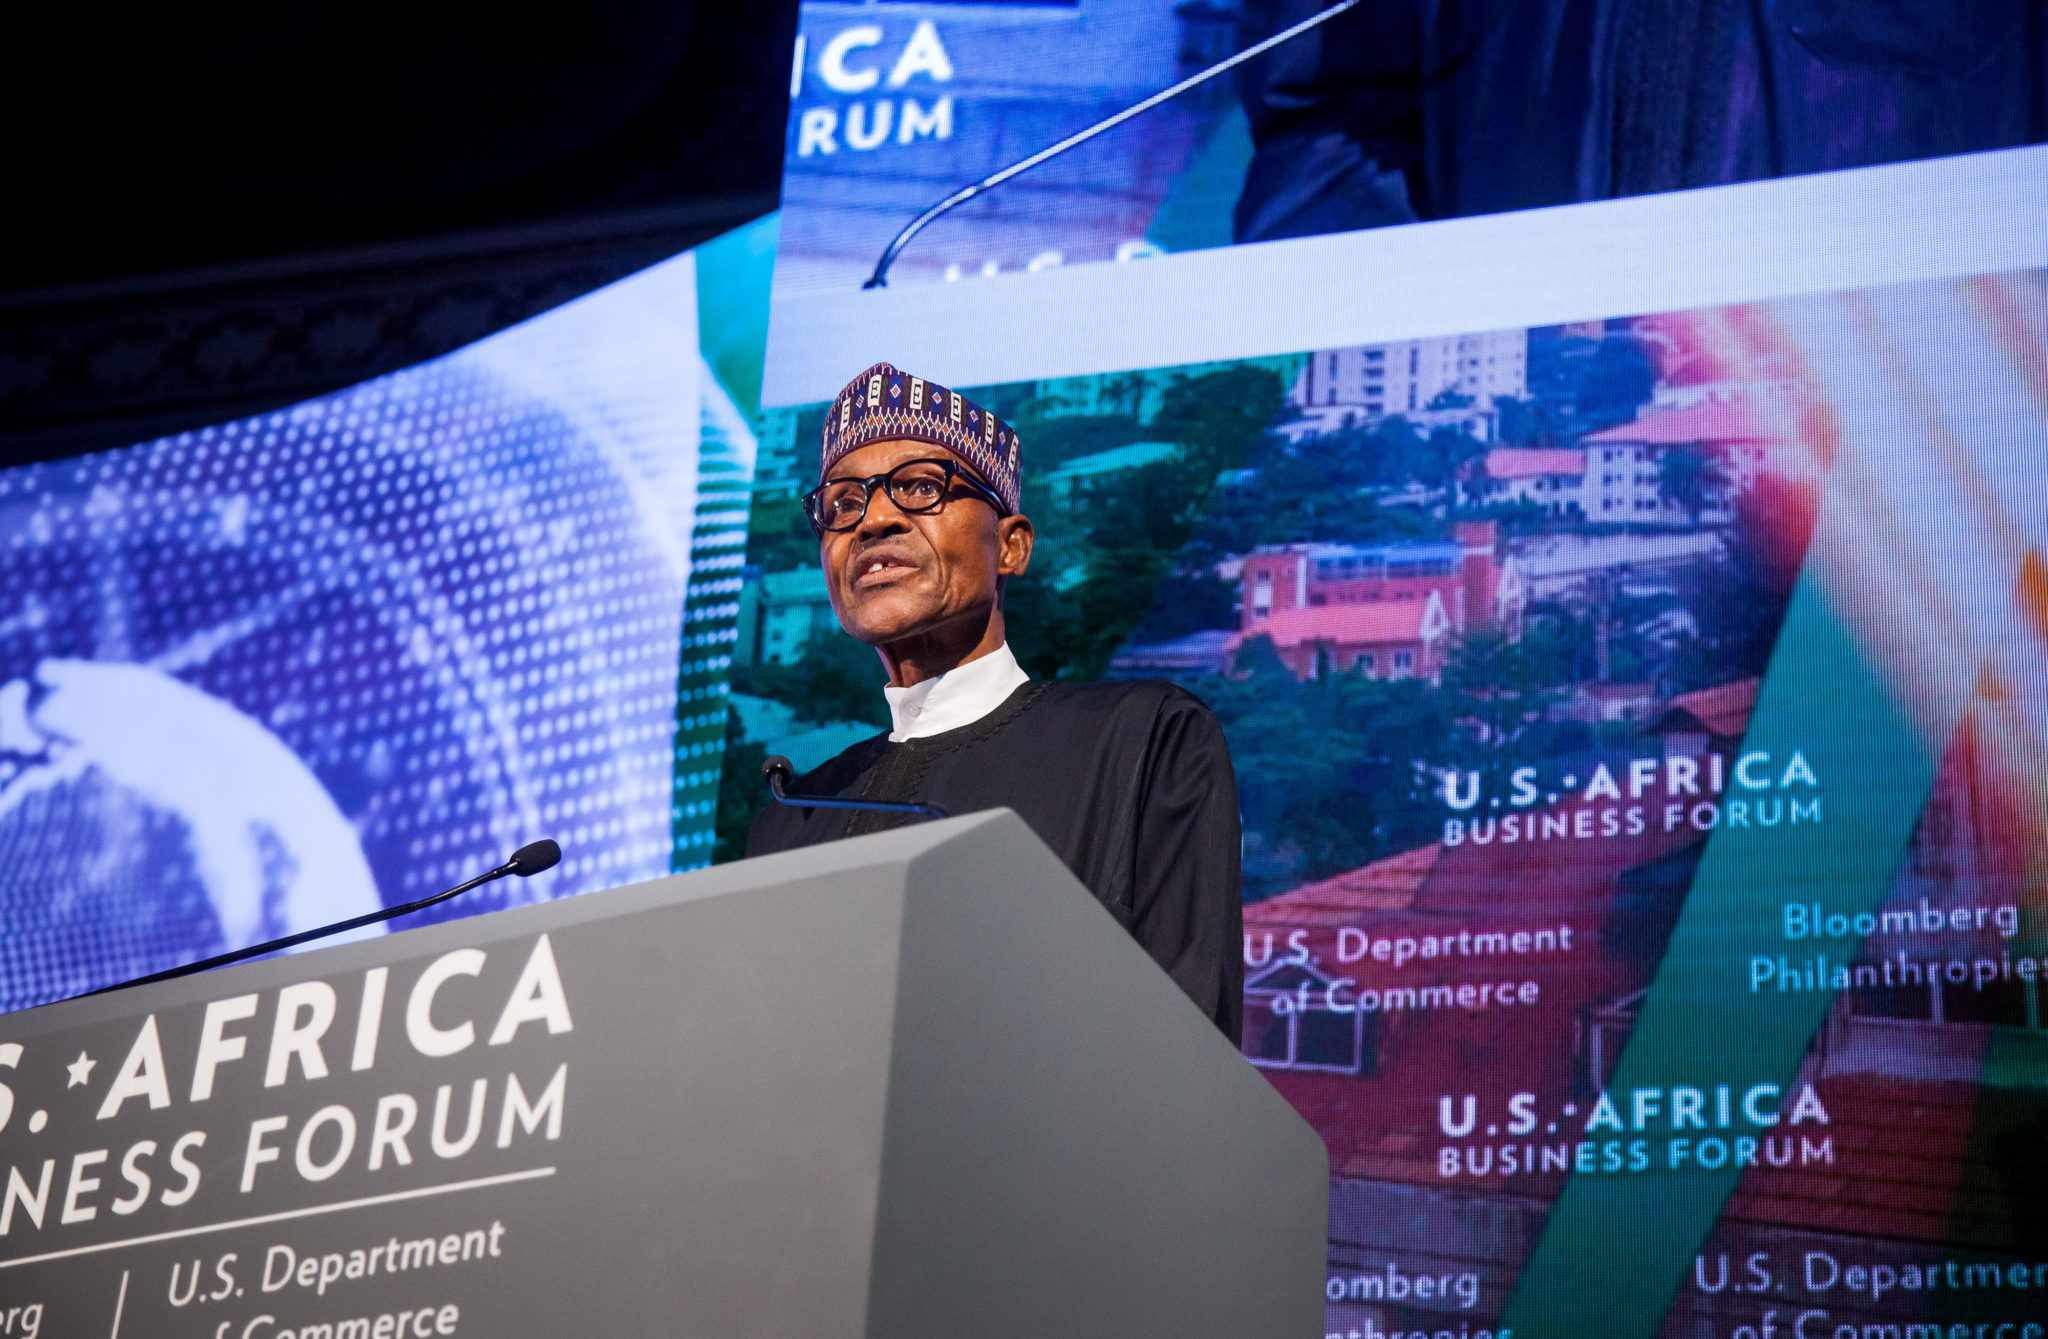 Key Speakers At The U.S.-Africa Business Forum